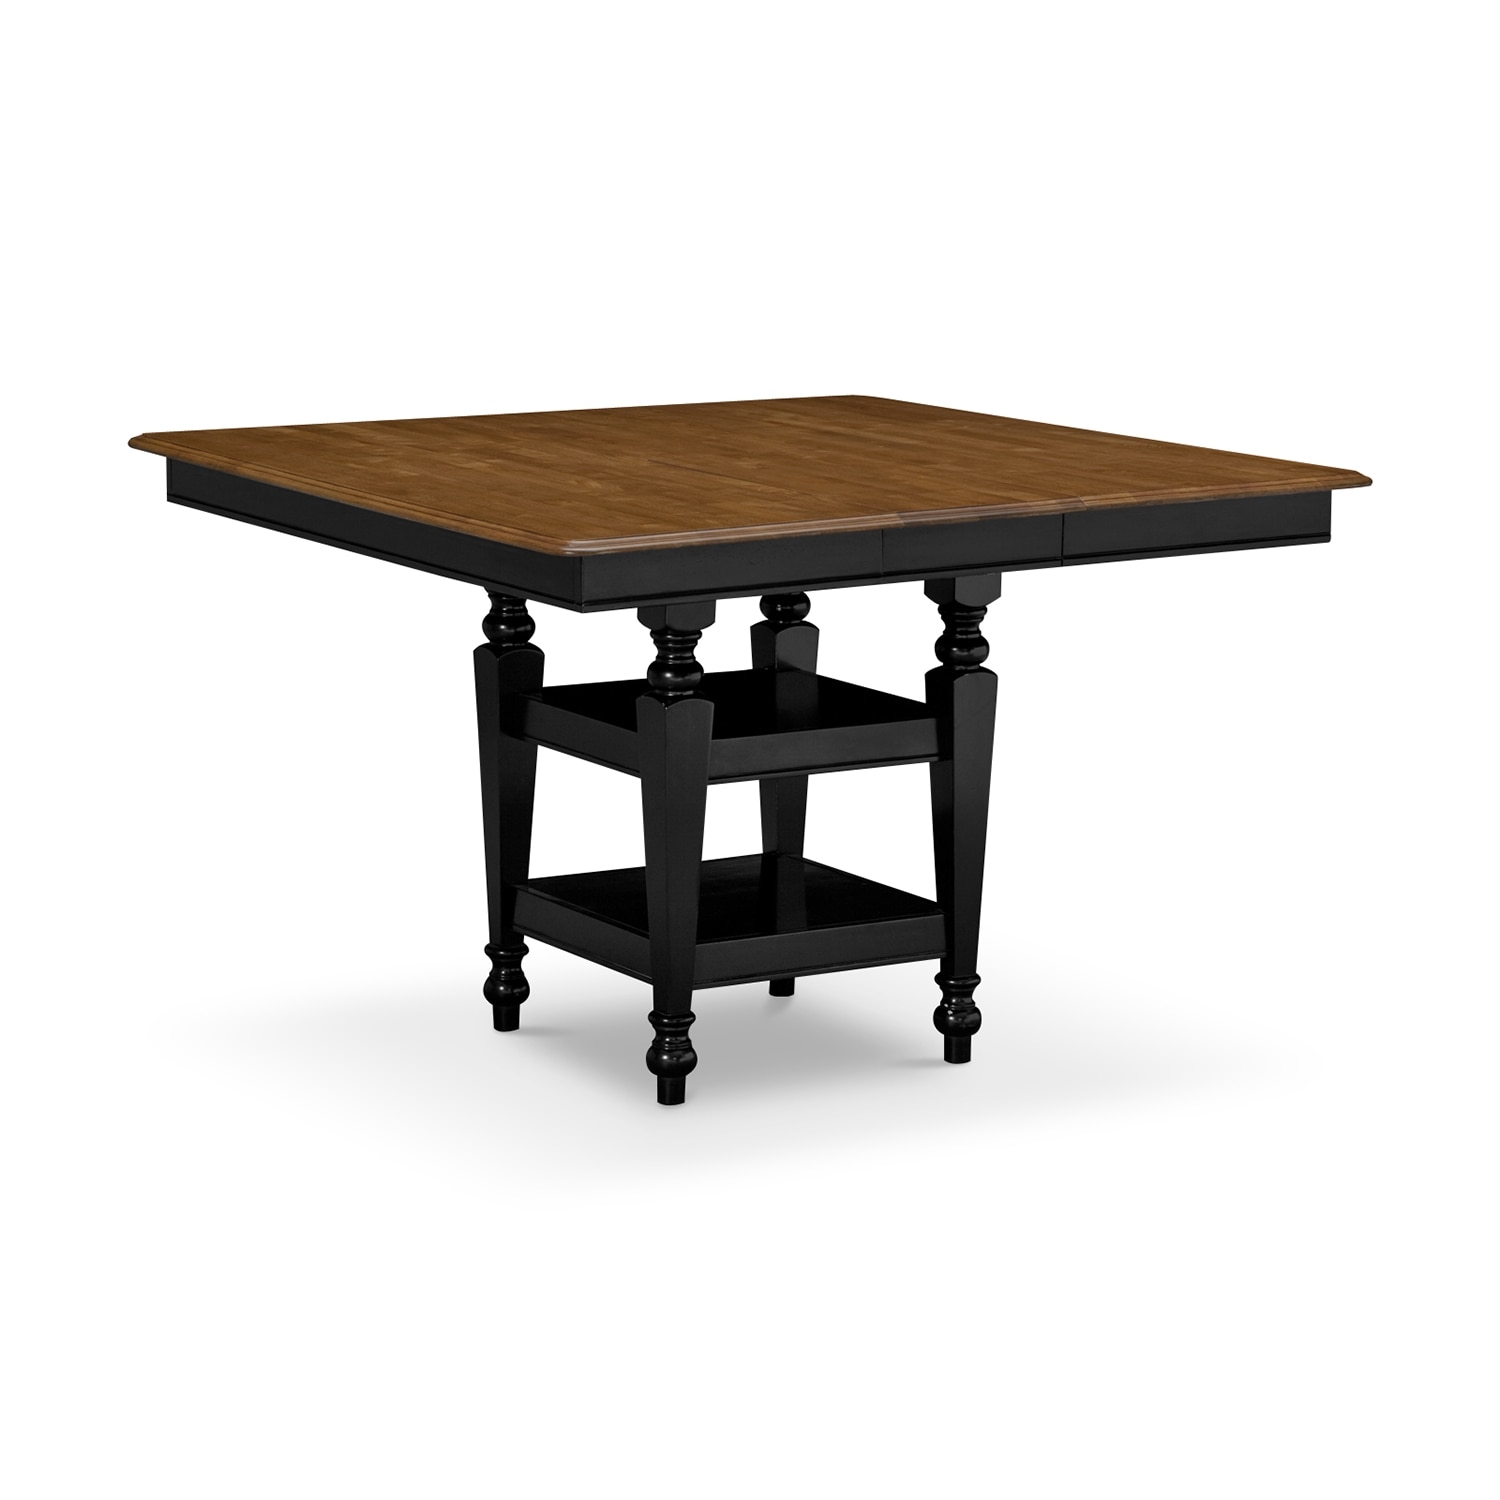 Mystic dining room counter height table value city for Counter height dining table